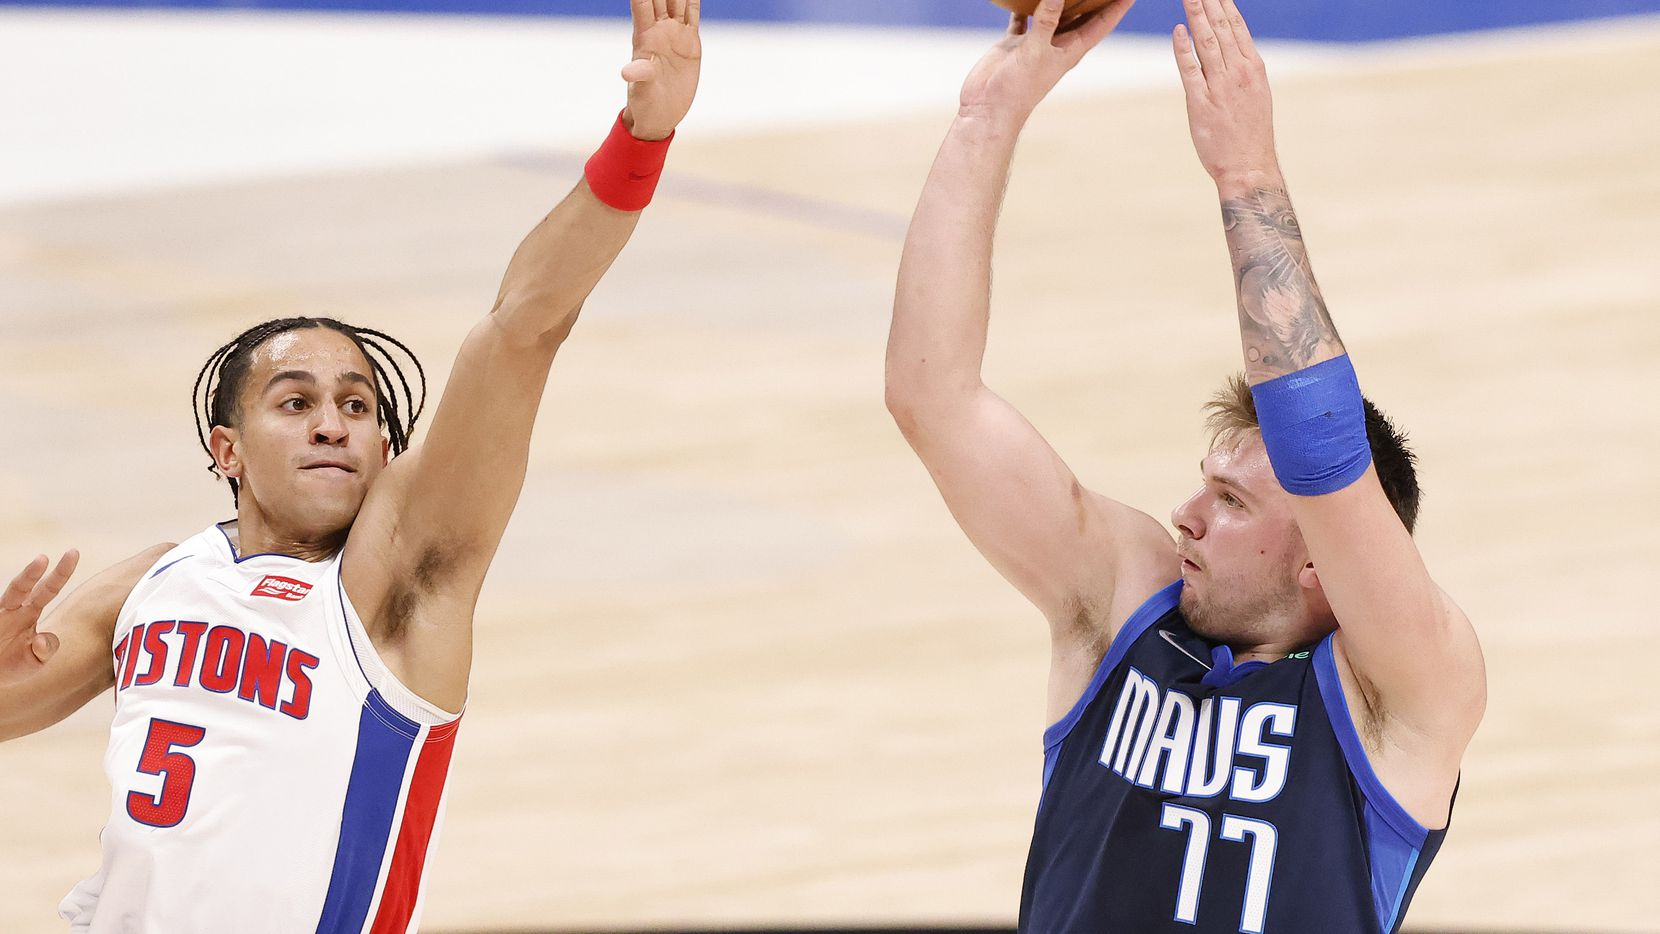 Dallas Mavericks guard Luka Doncic (77) puts up a there-pointer against Detroit Pistons guard Frank Jackson (5) in the second quarter at the American Airlines Center in Dallas, Wednesday, April 21, 2021.